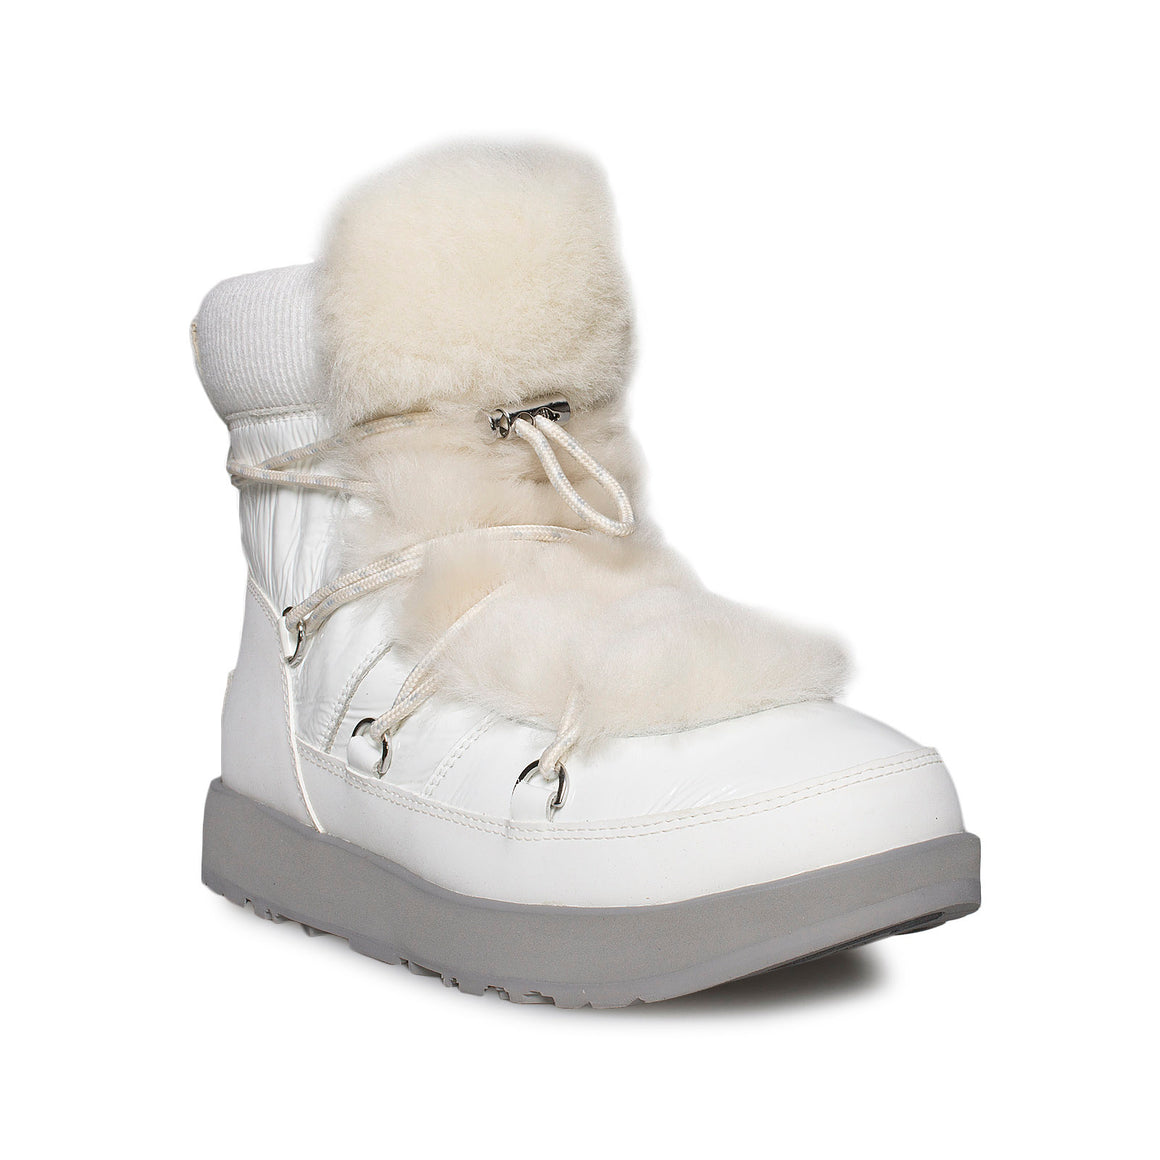 UGG Highland White Boots - Women's